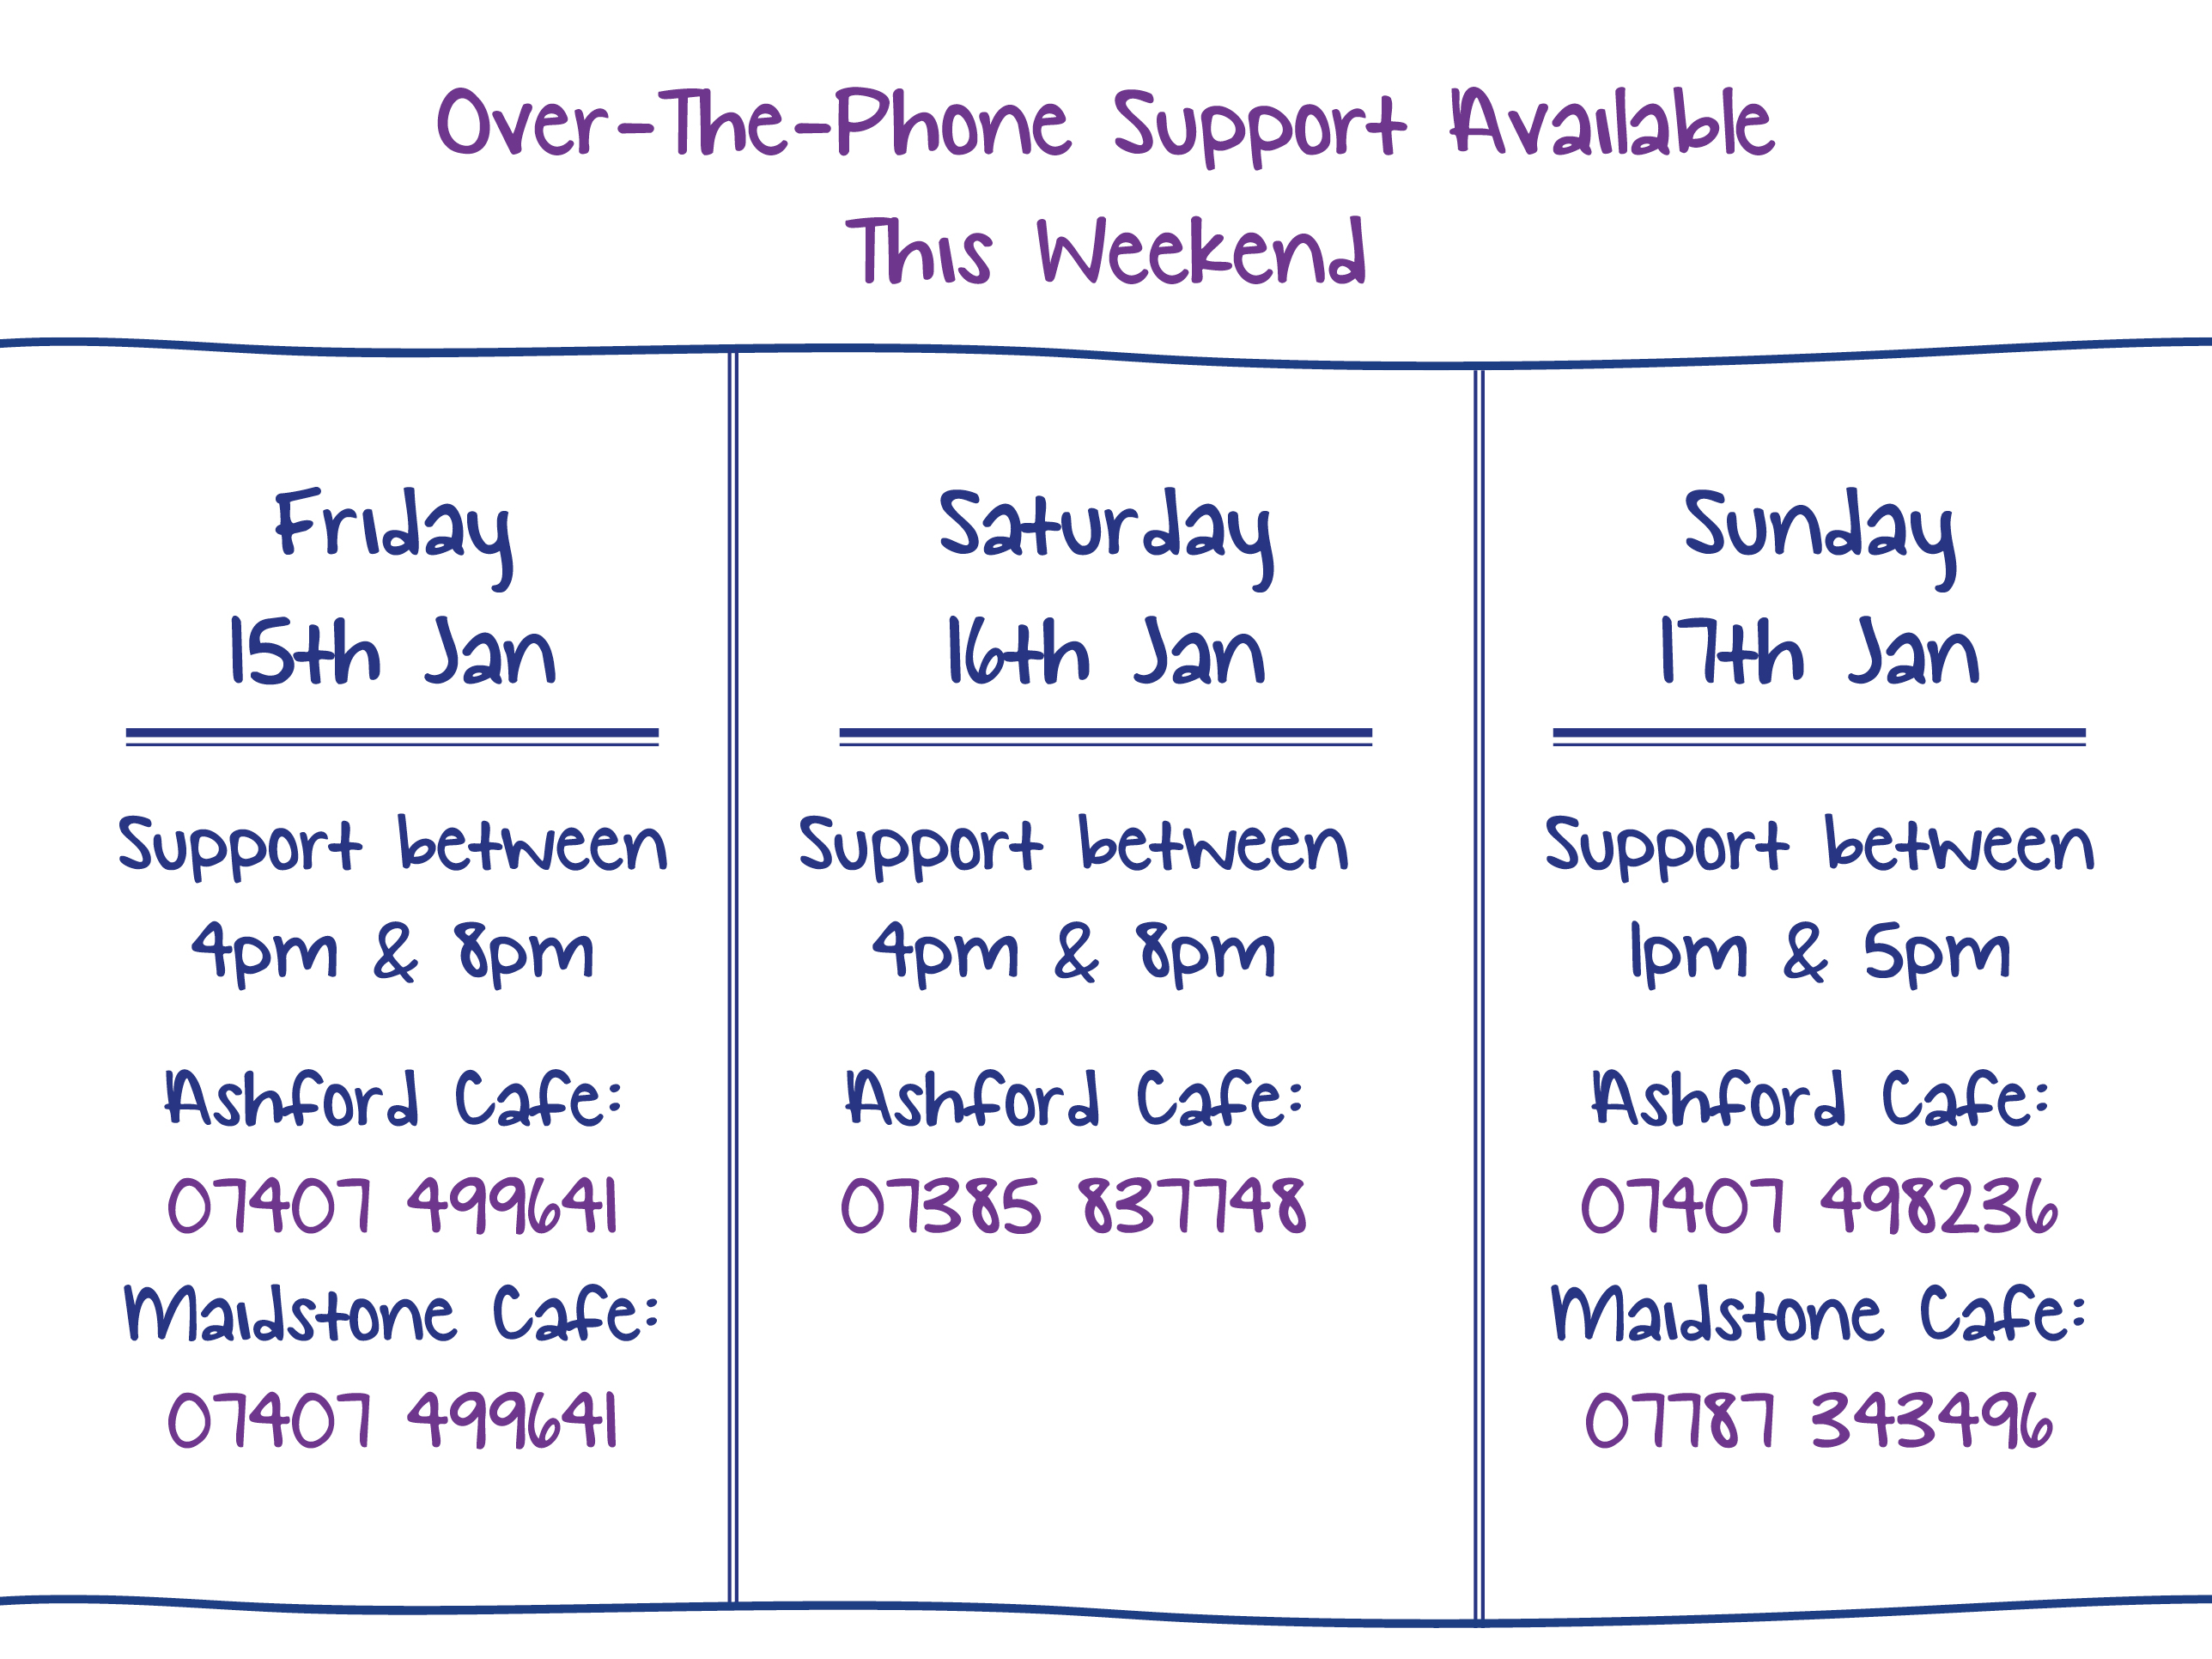 Over-The-Phone Support Available This Weekend. Friday 15th Jan. Support between 4pm & 8pm Ashford Cafe: 07407 499641 Maidstone Cafe: 07407 499641. Saturday 16th Jan. Support between 4pm & 8pm Ashford Cafe: 07385 837748. Sunday 17th Jan. Support between 1pm & 5pm Ashford Cafe: 07407 498236 Maidstone Cafe: 07787 343496